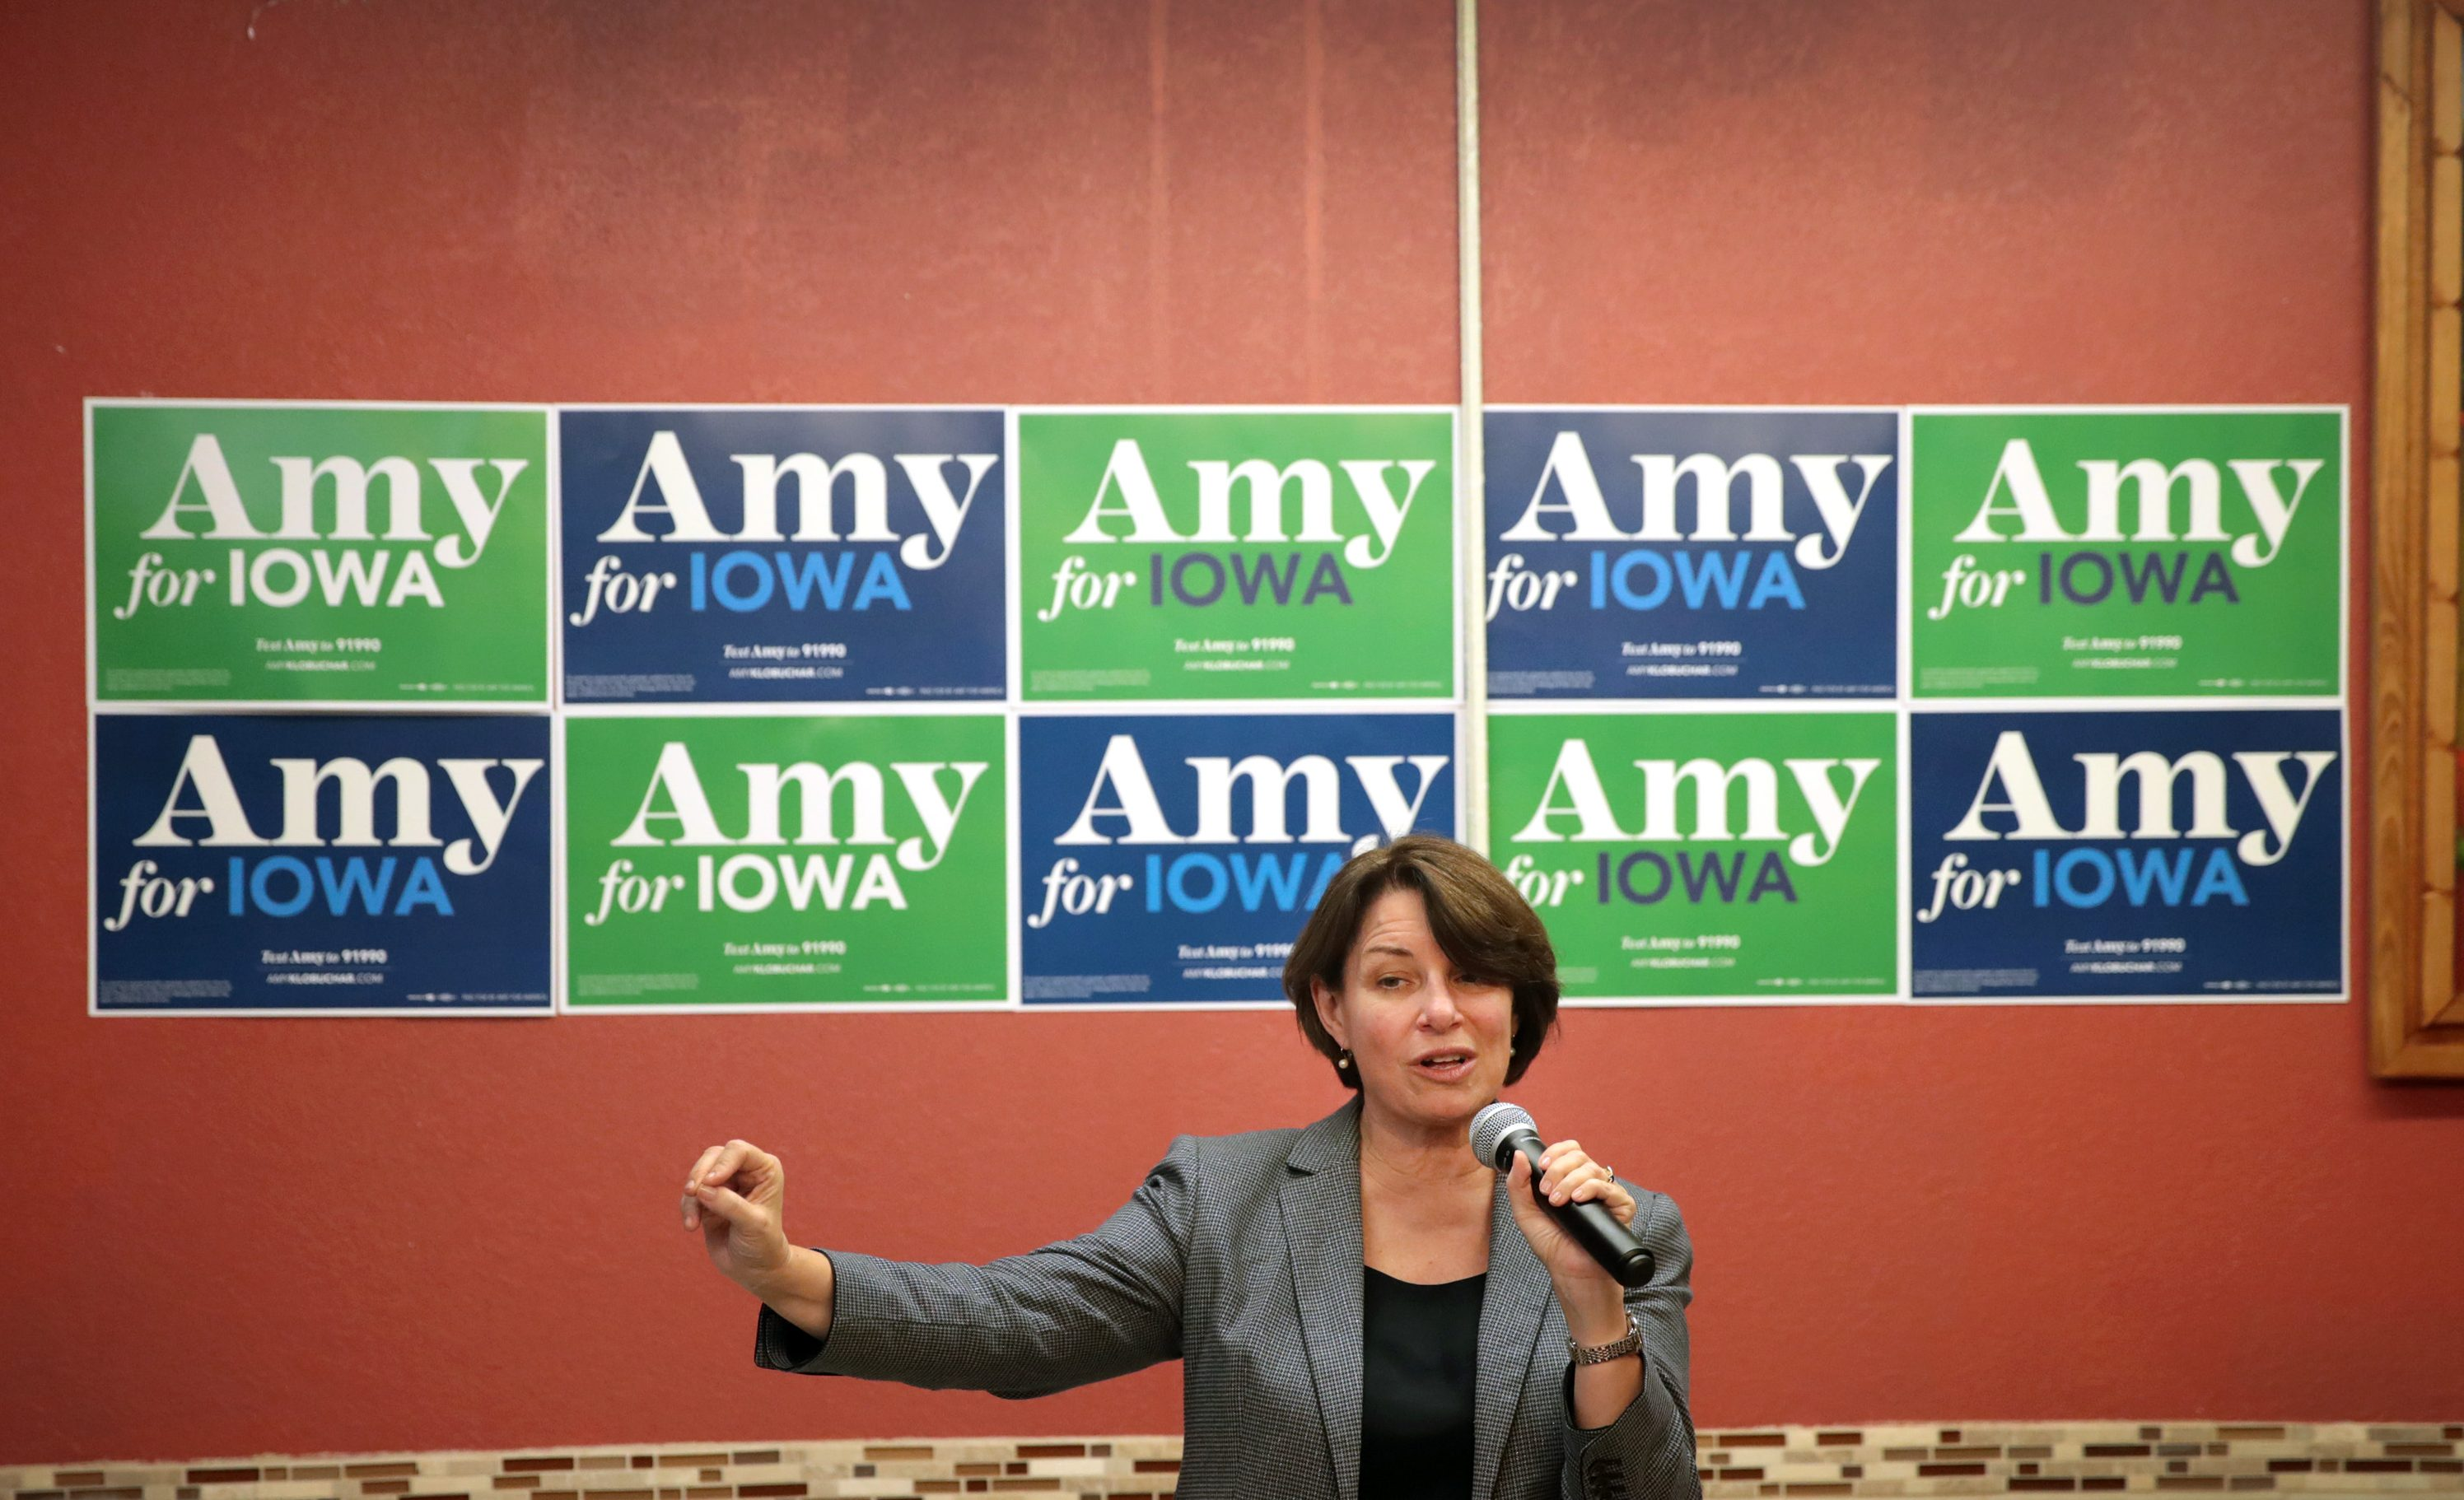 Democratic presidential candidate Sen. Amy Klobuchar (D-MN) speaks to guests during a campaign stop at La Frontera restaurant on Nov. 26, 2019 in Hampton, Iowa.